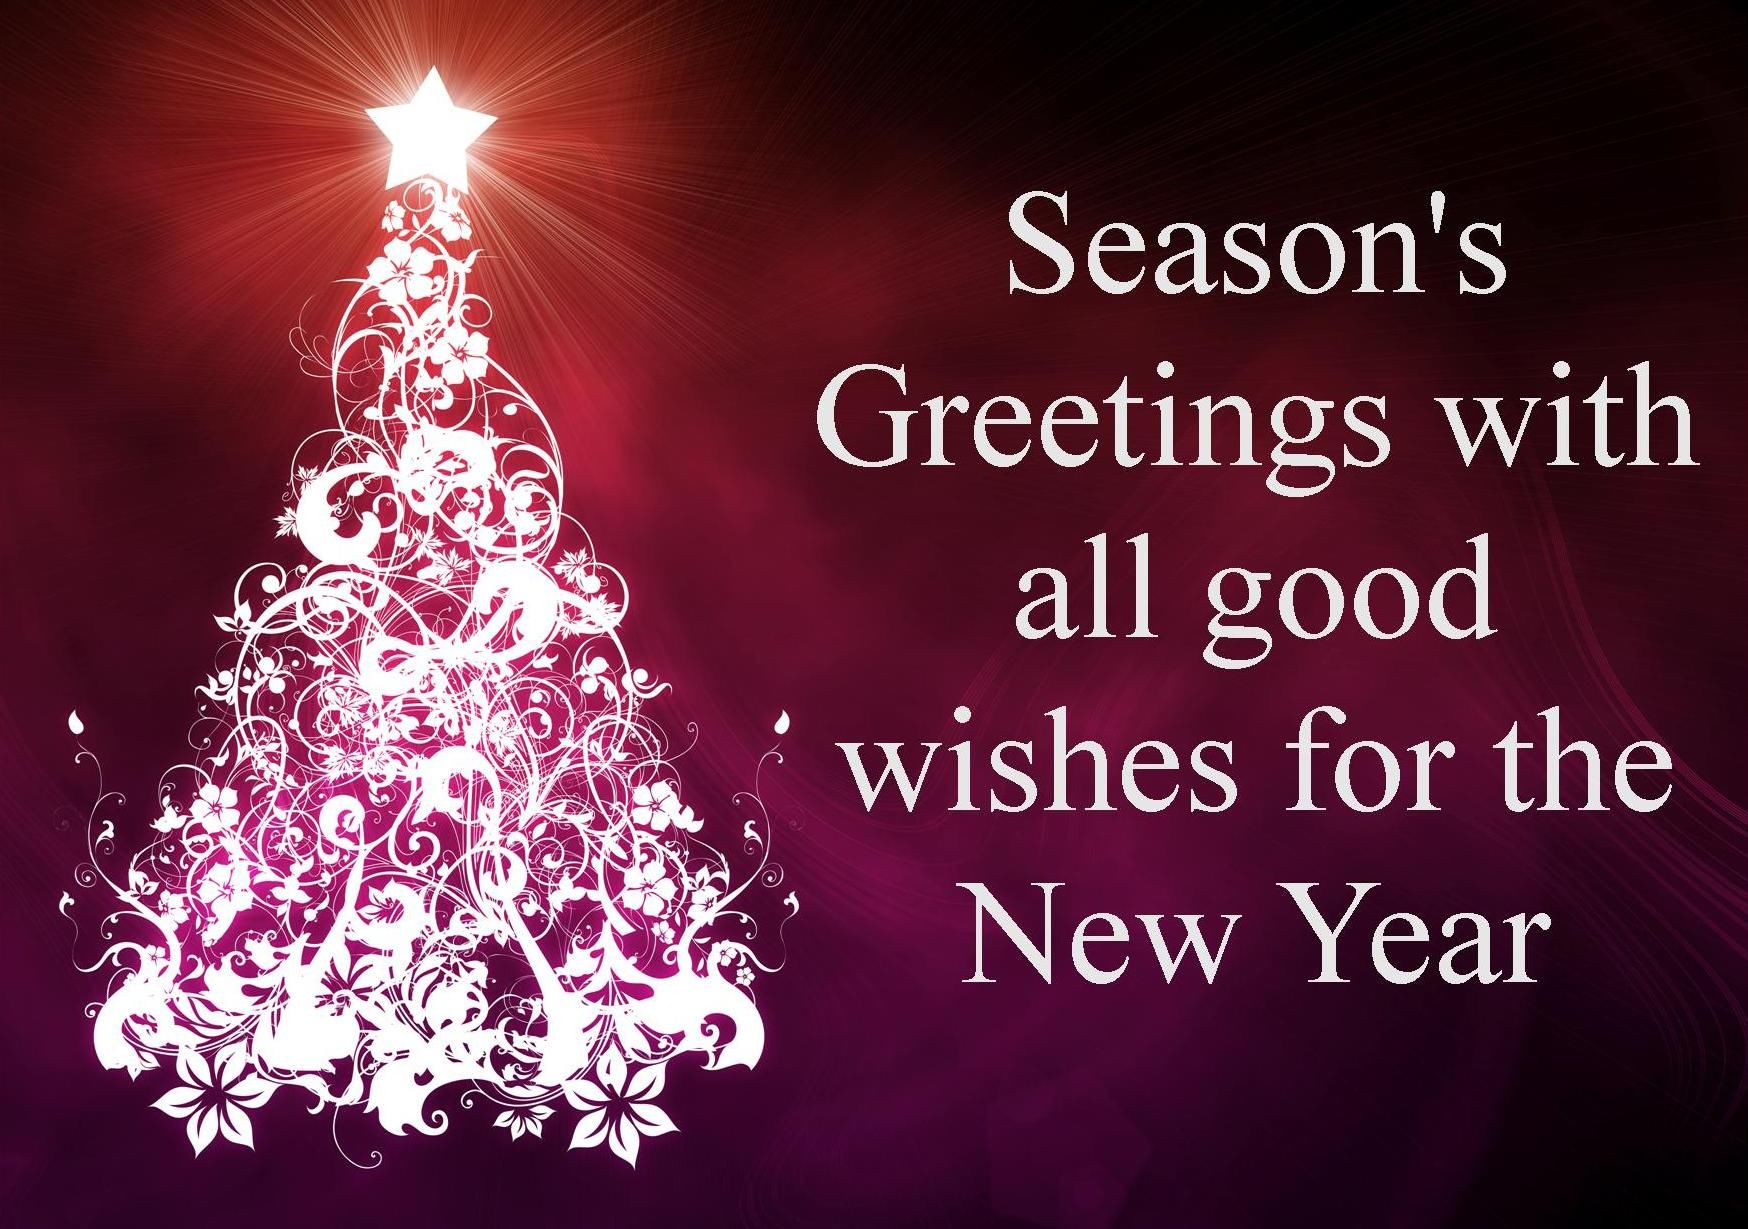 Seasons Greetings With All Good Wishes For The New Year Pictures